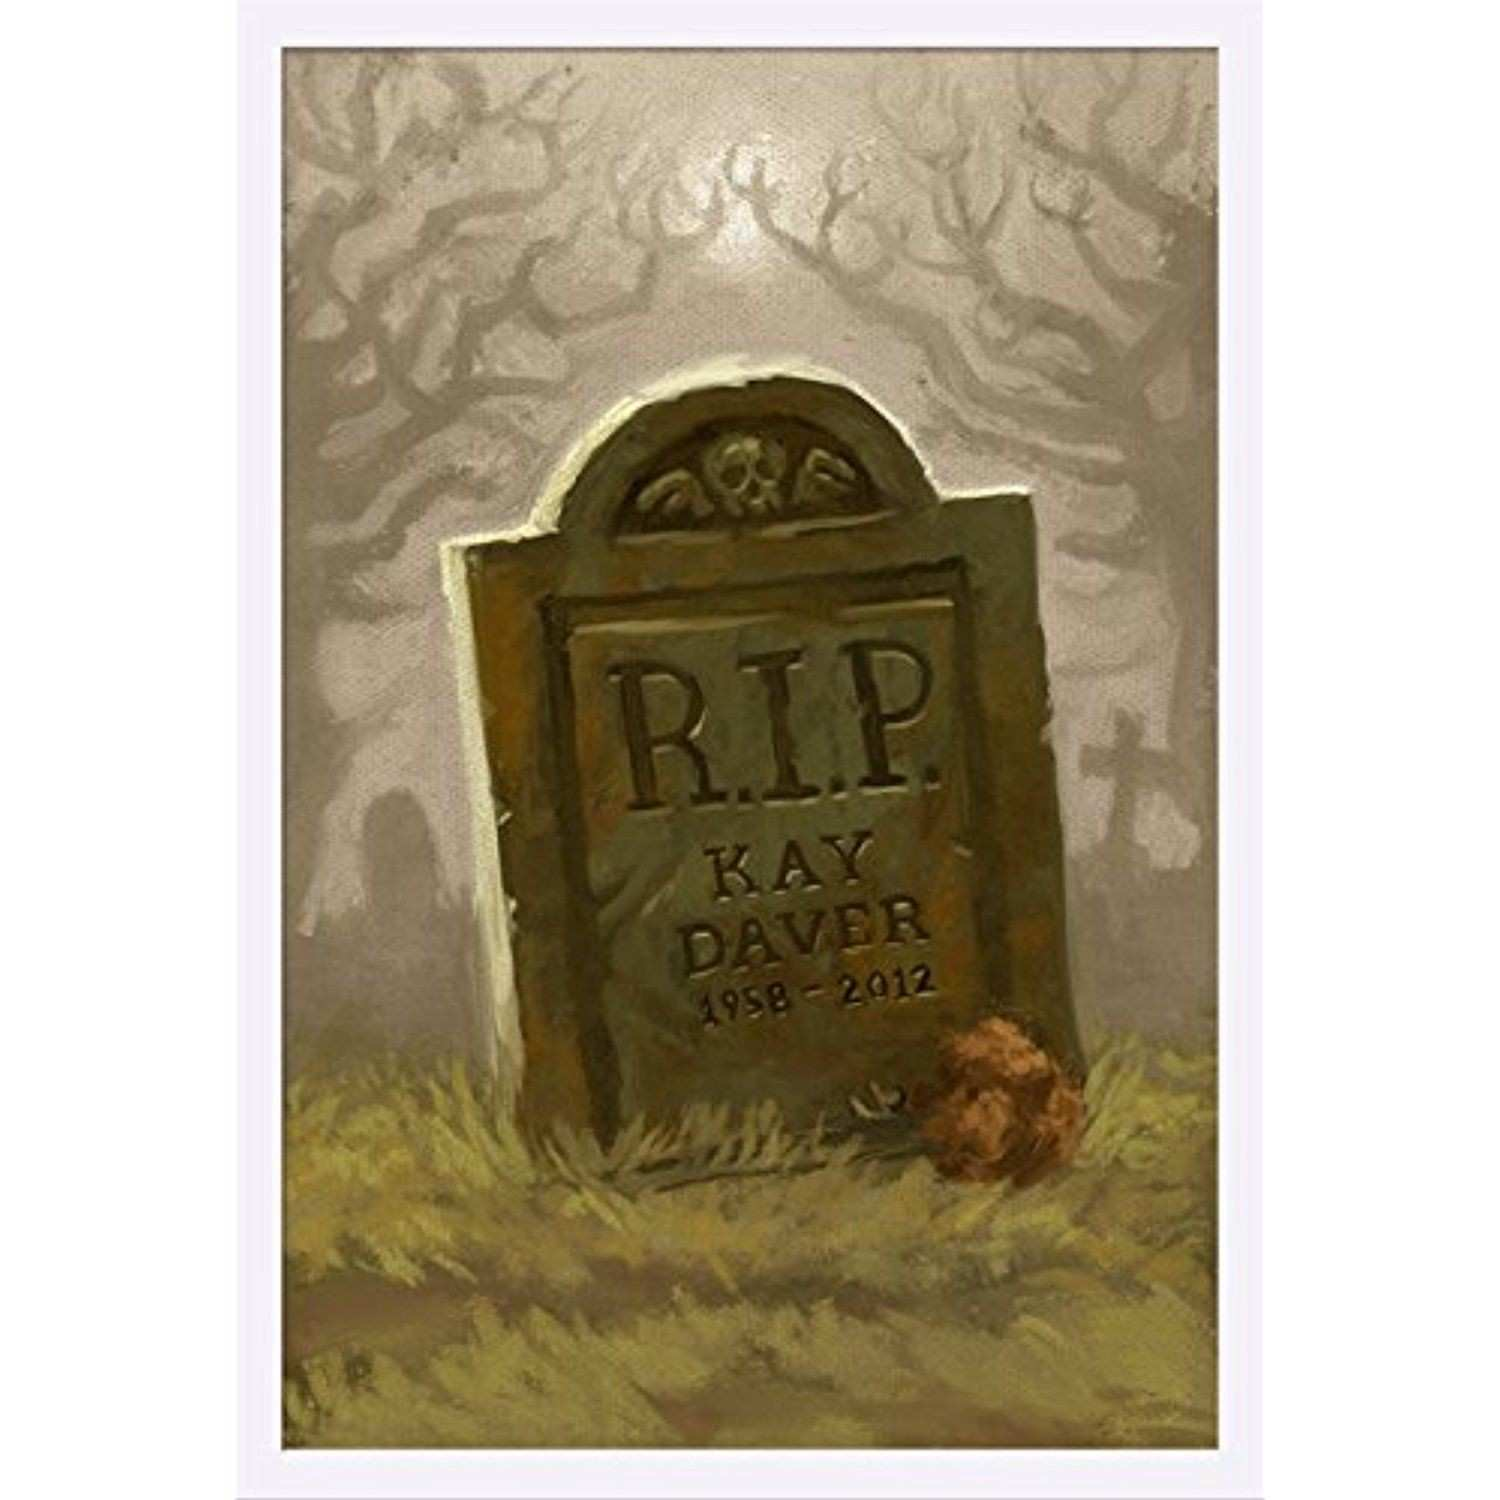 Headstone Halloween Oil Painting 24x36 Giclee Art Print Gallery